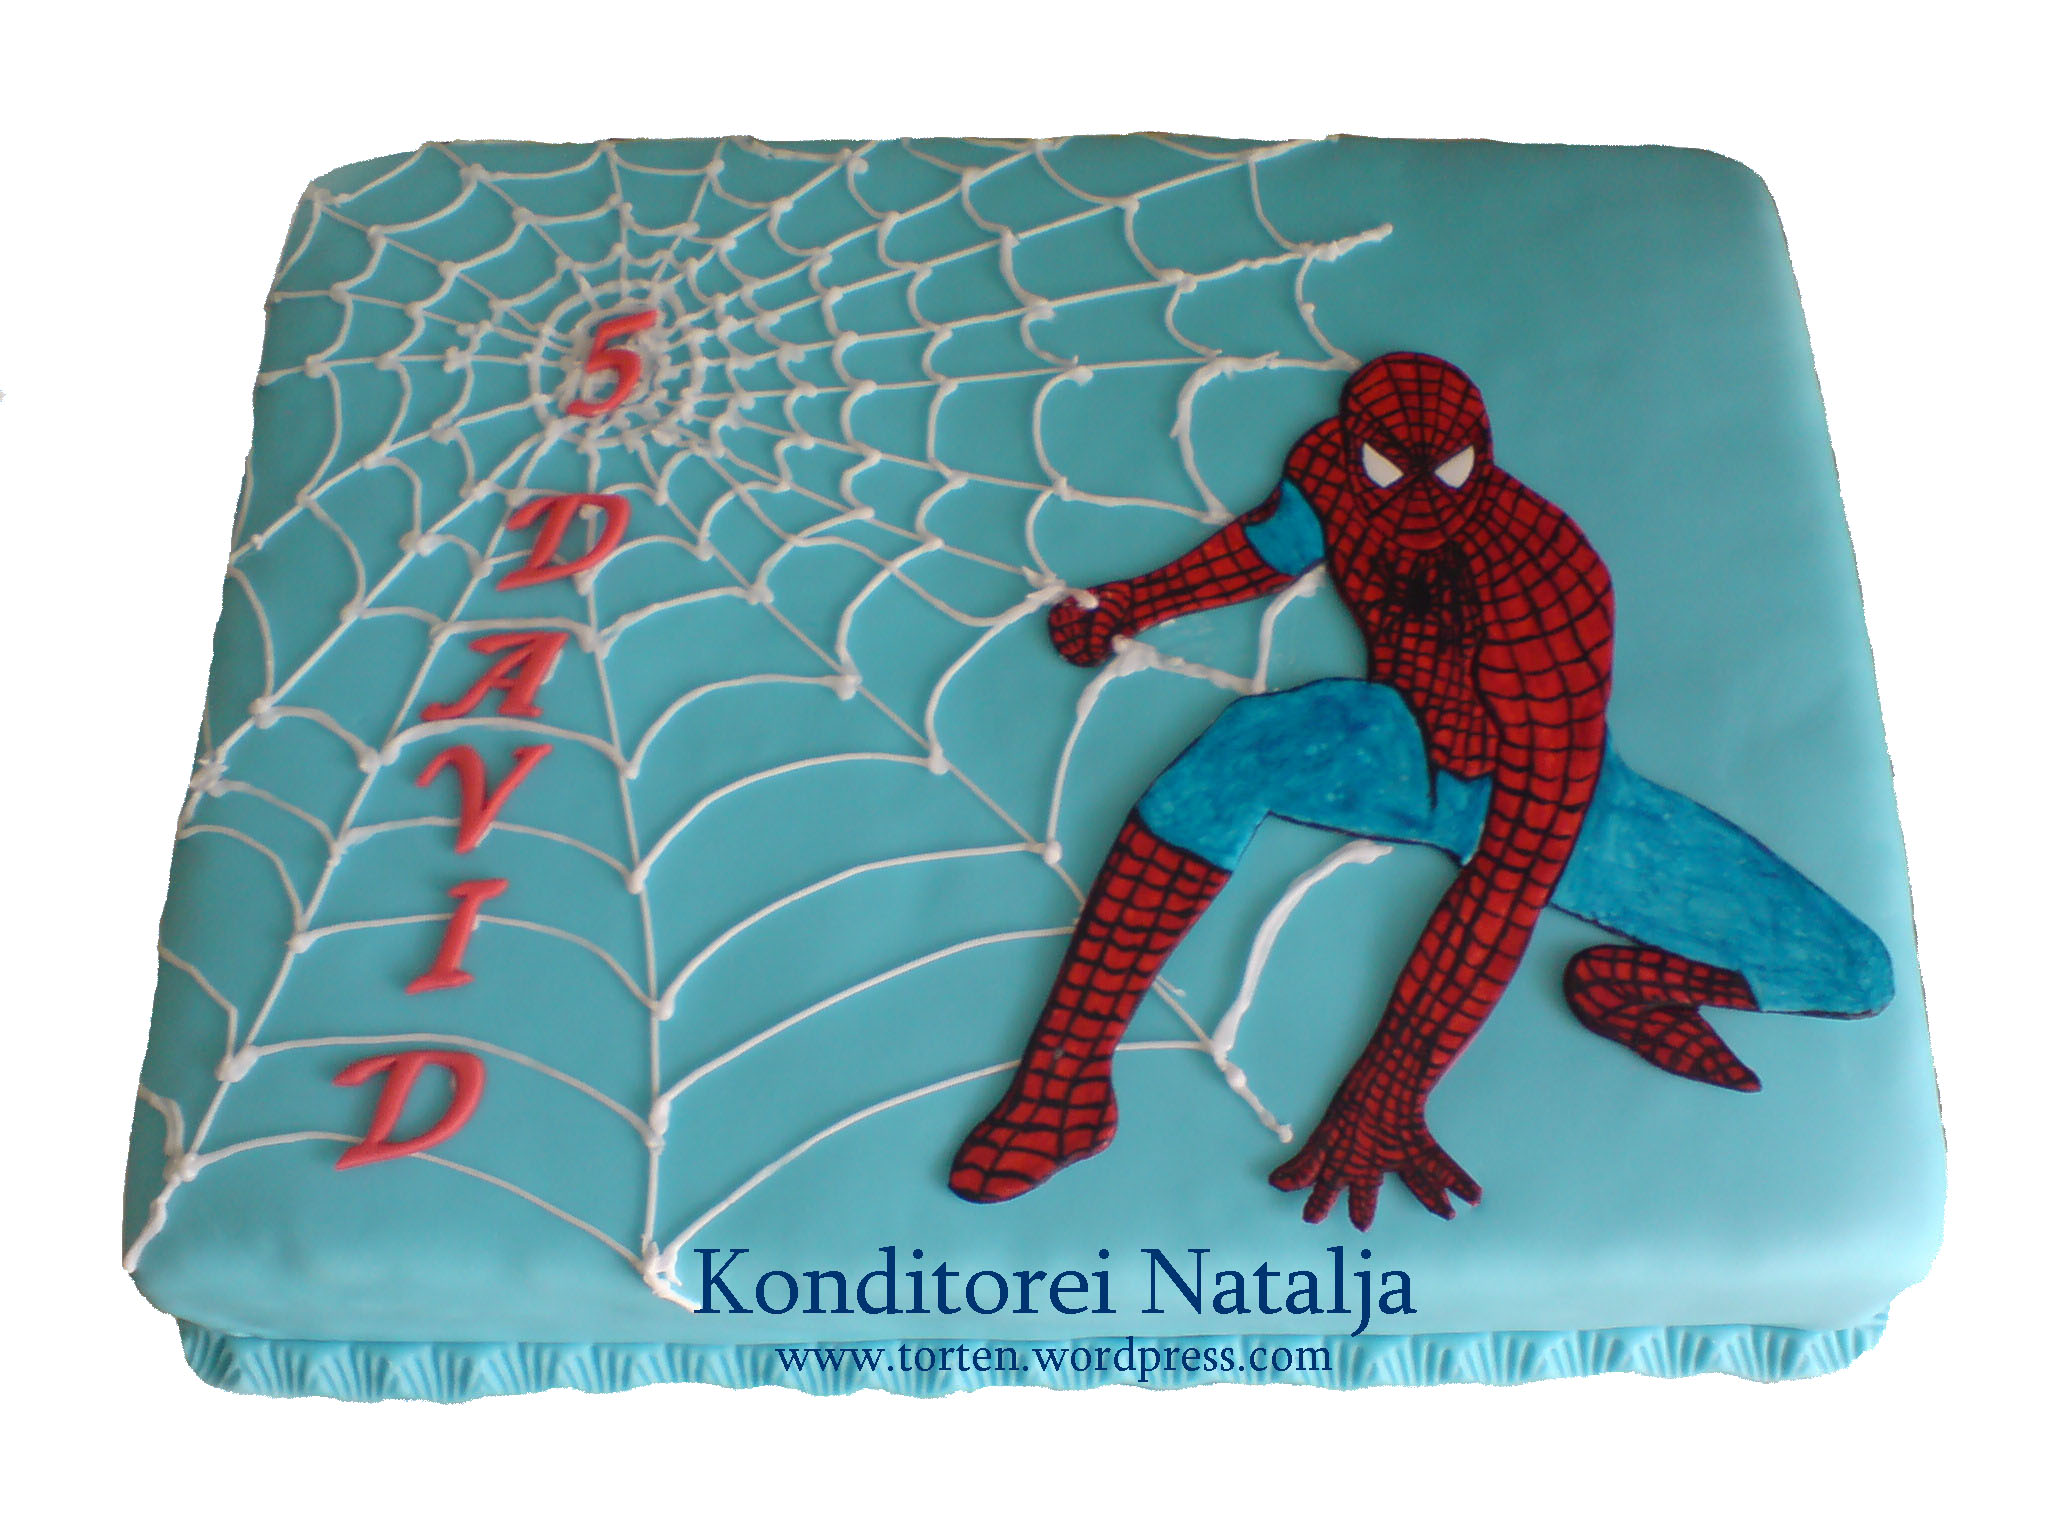 spider man torte die kindergeburtstagstorte f r comicfans konditorei natalja. Black Bedroom Furniture Sets. Home Design Ideas